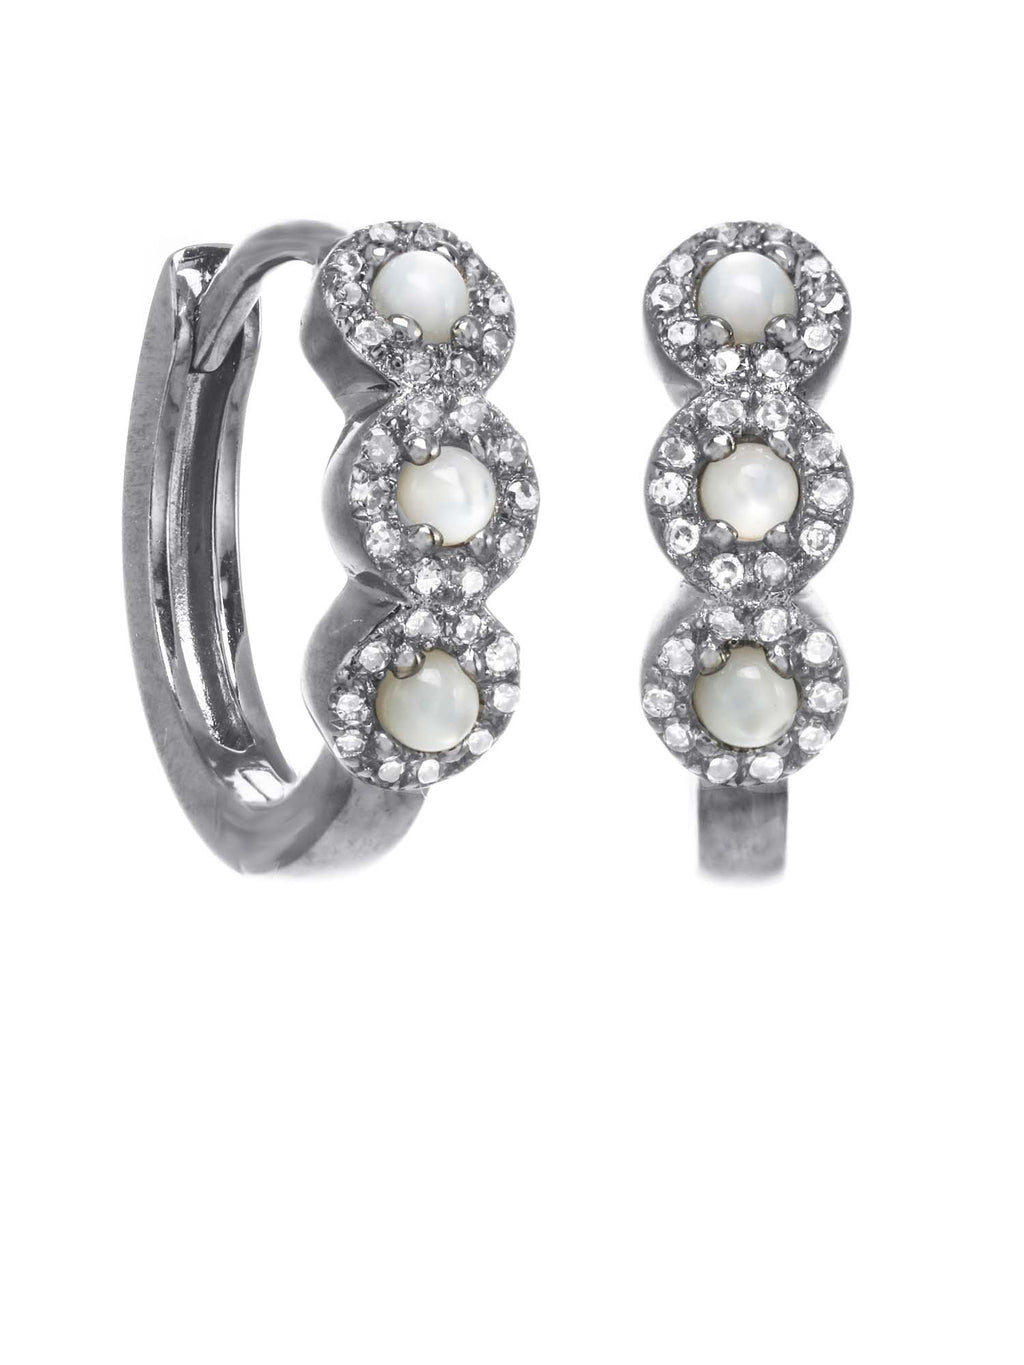 Margo Morrison Moonstone and Diamond Hoop Earrings - Sterling Silver